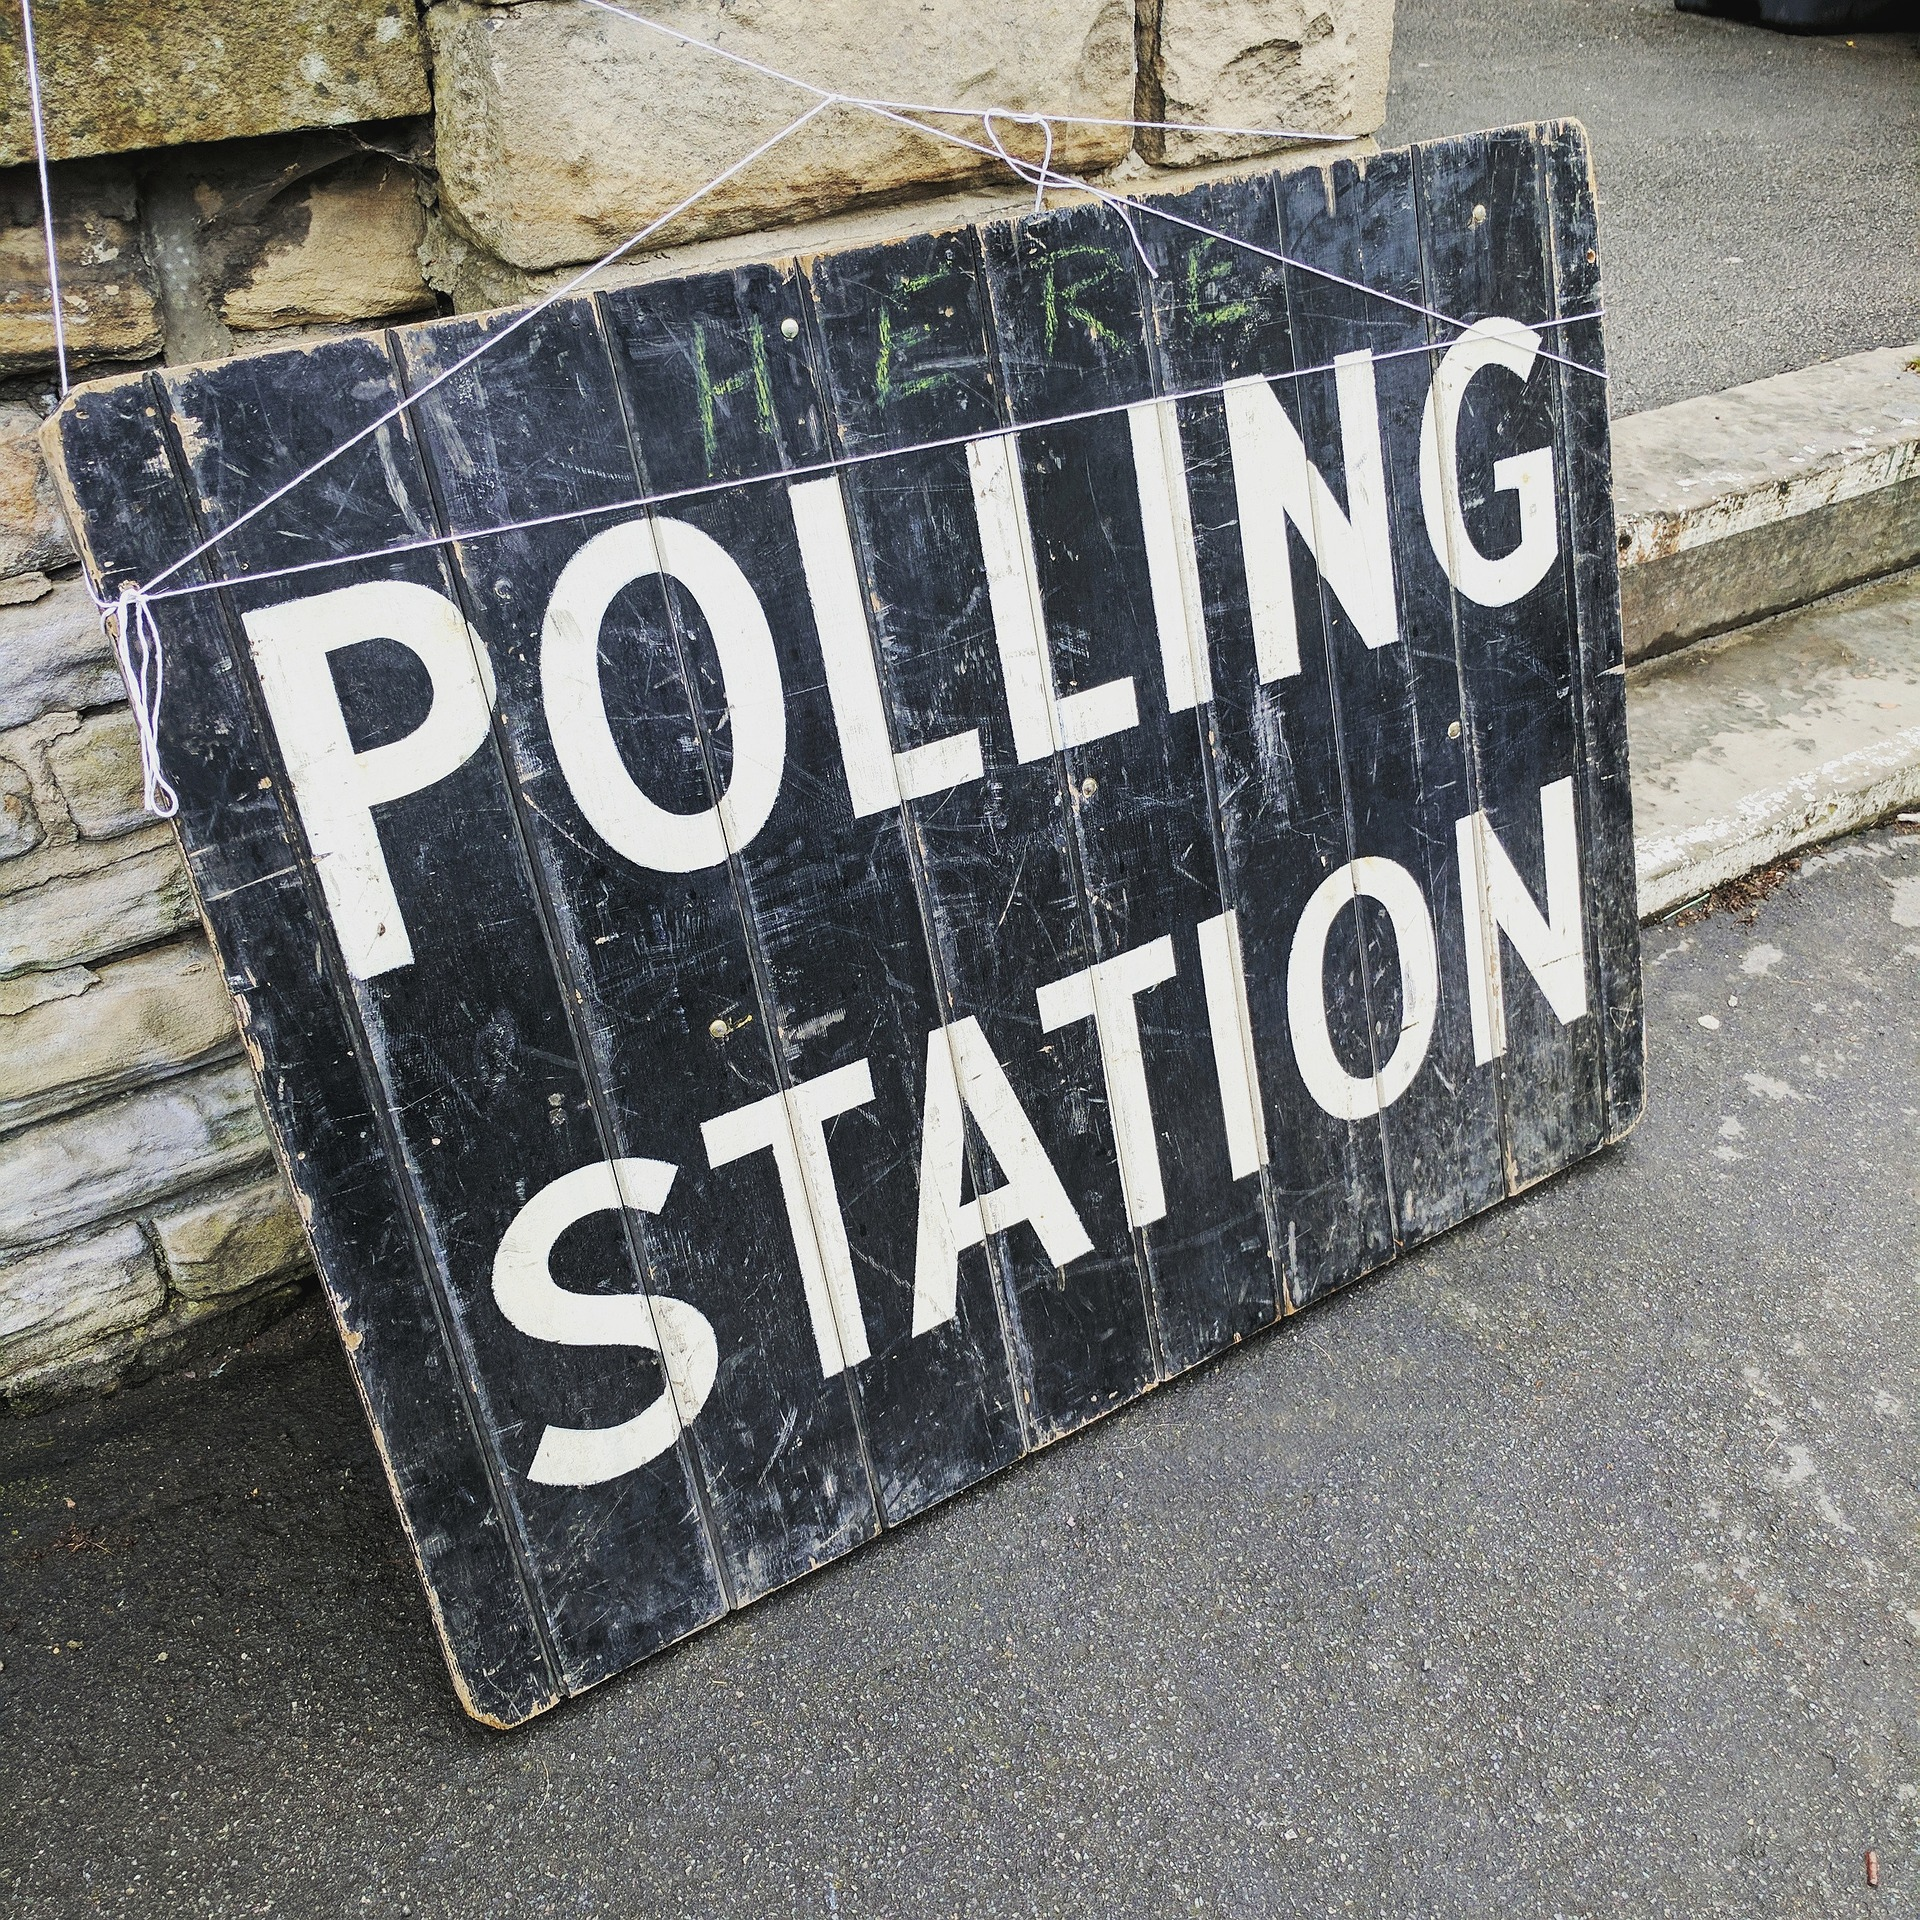 Polling station sign - voter registration